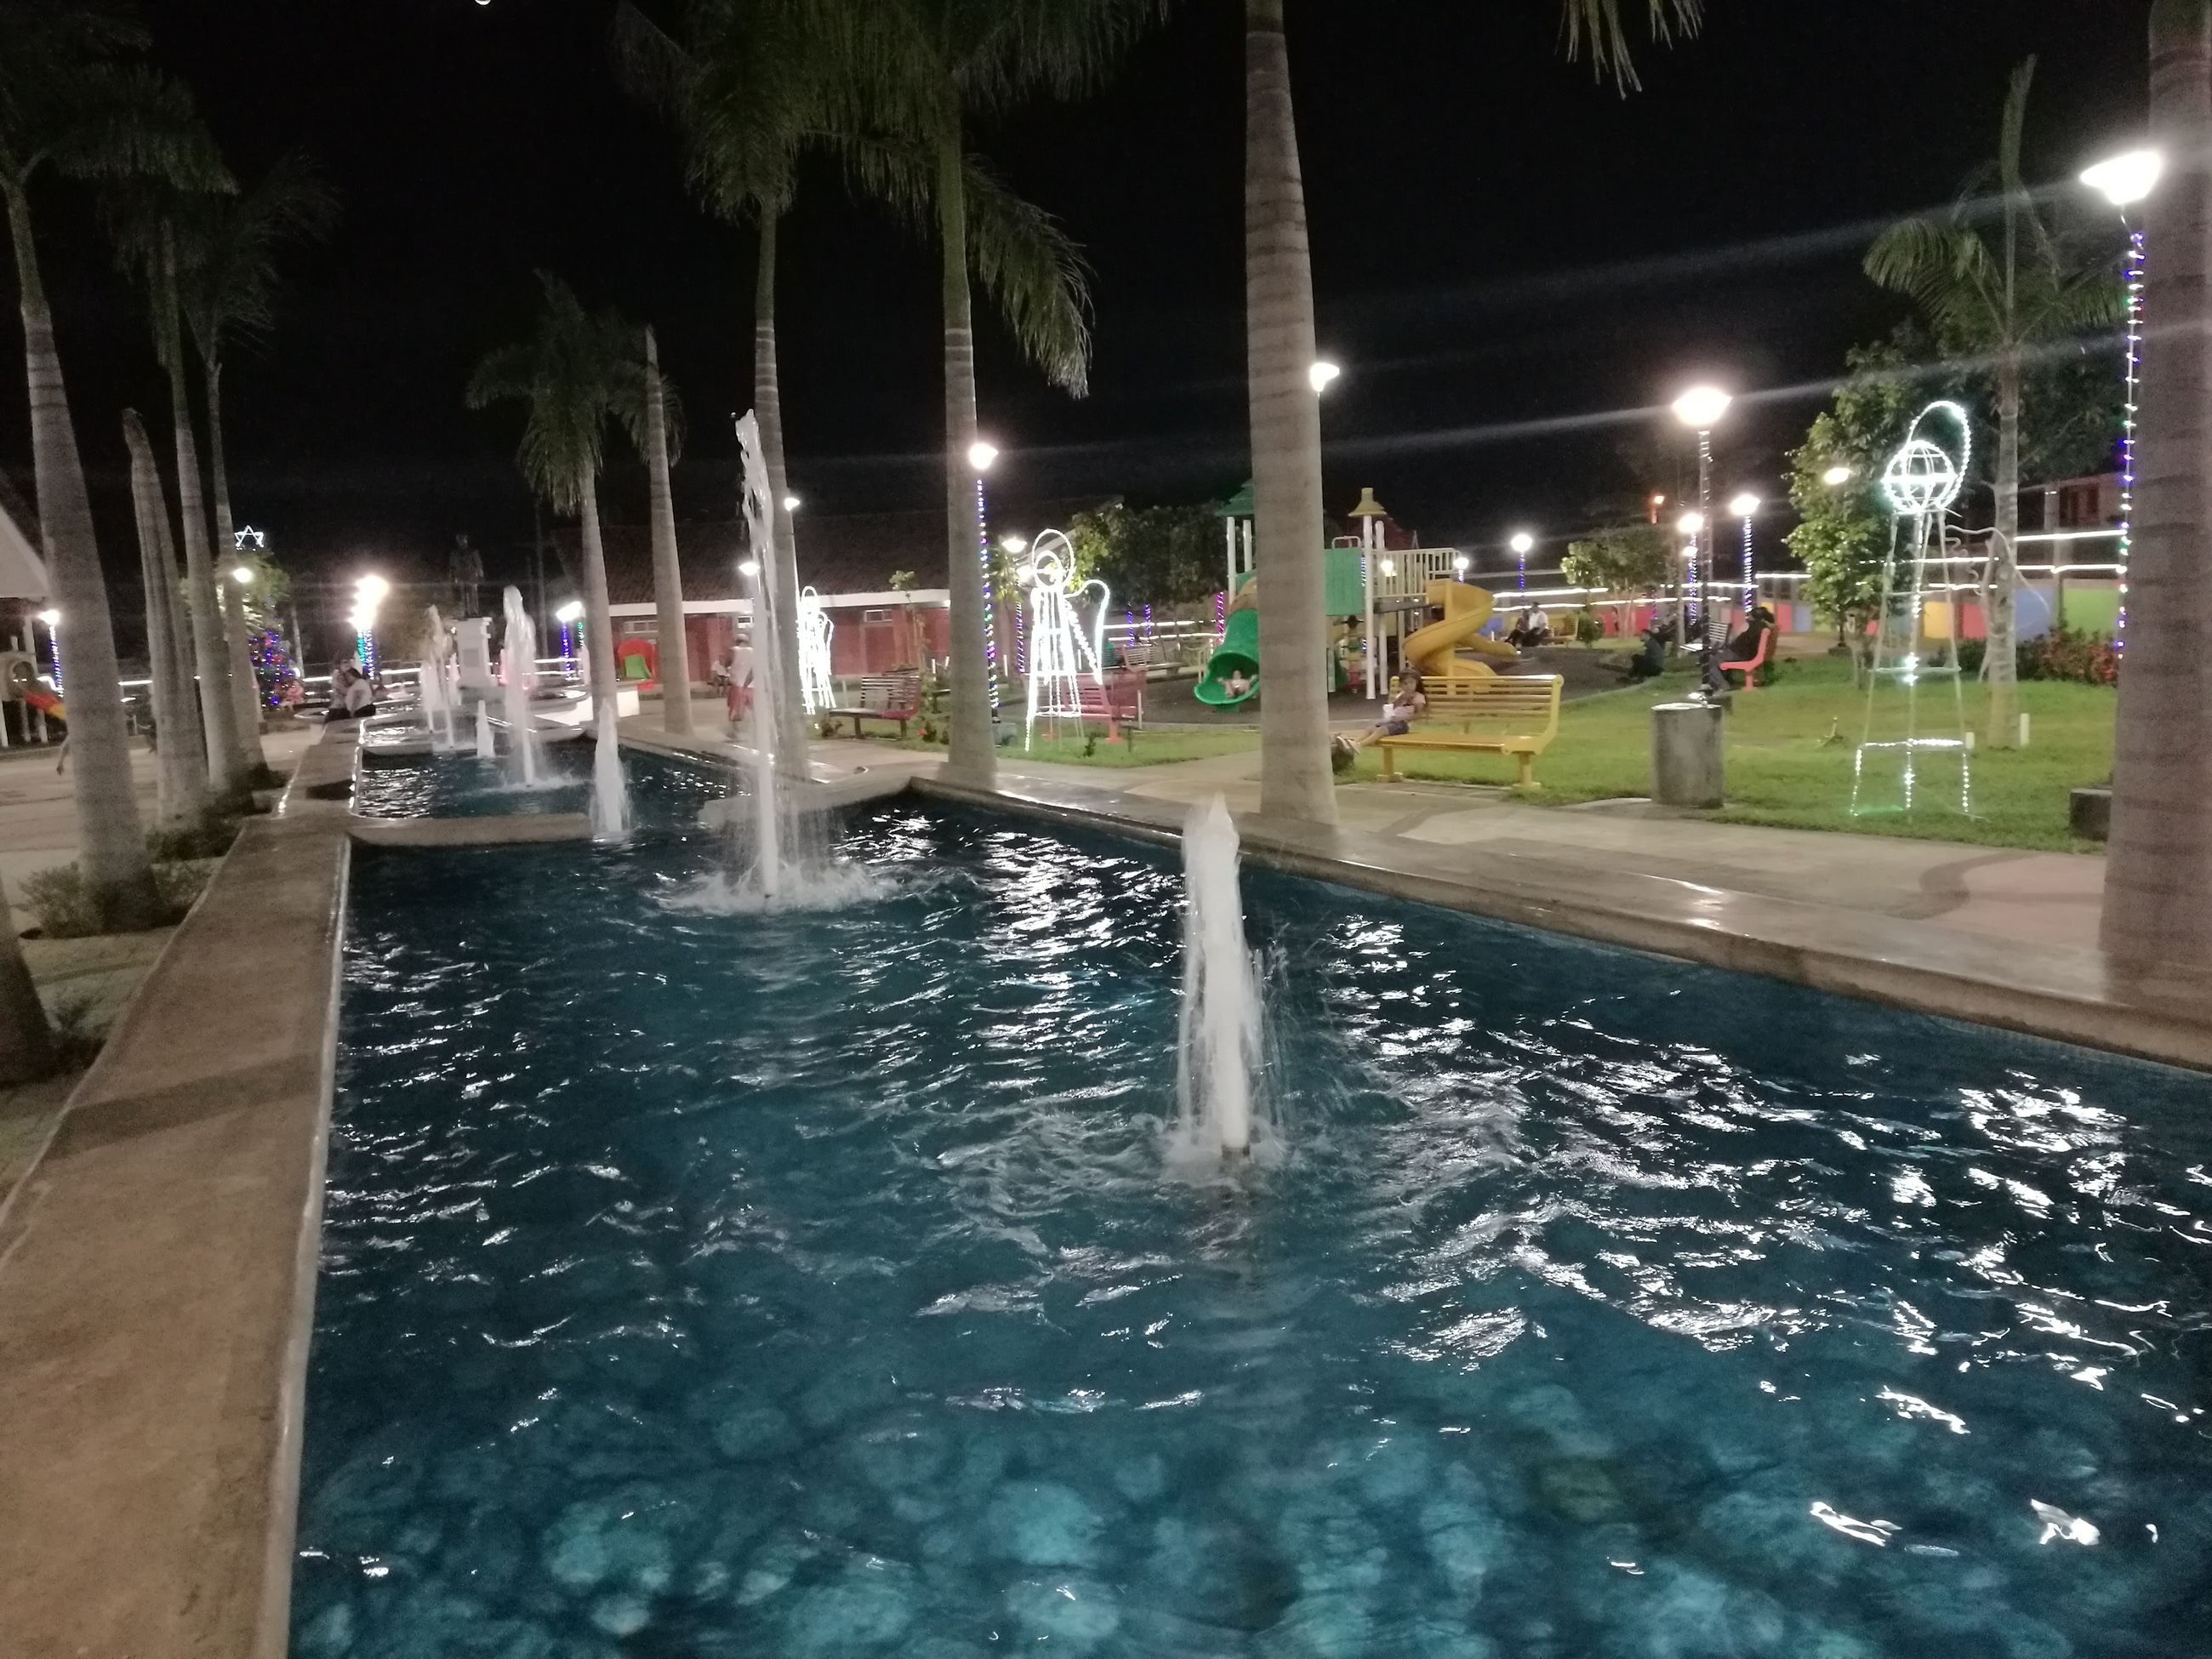 water, swimming pool, night, illuminated, real people, outdoors, water park, long exposure, waterfront, tree, large group of people, motion, men, palm tree, building exterior, spraying, architecture, nature, water slide, people